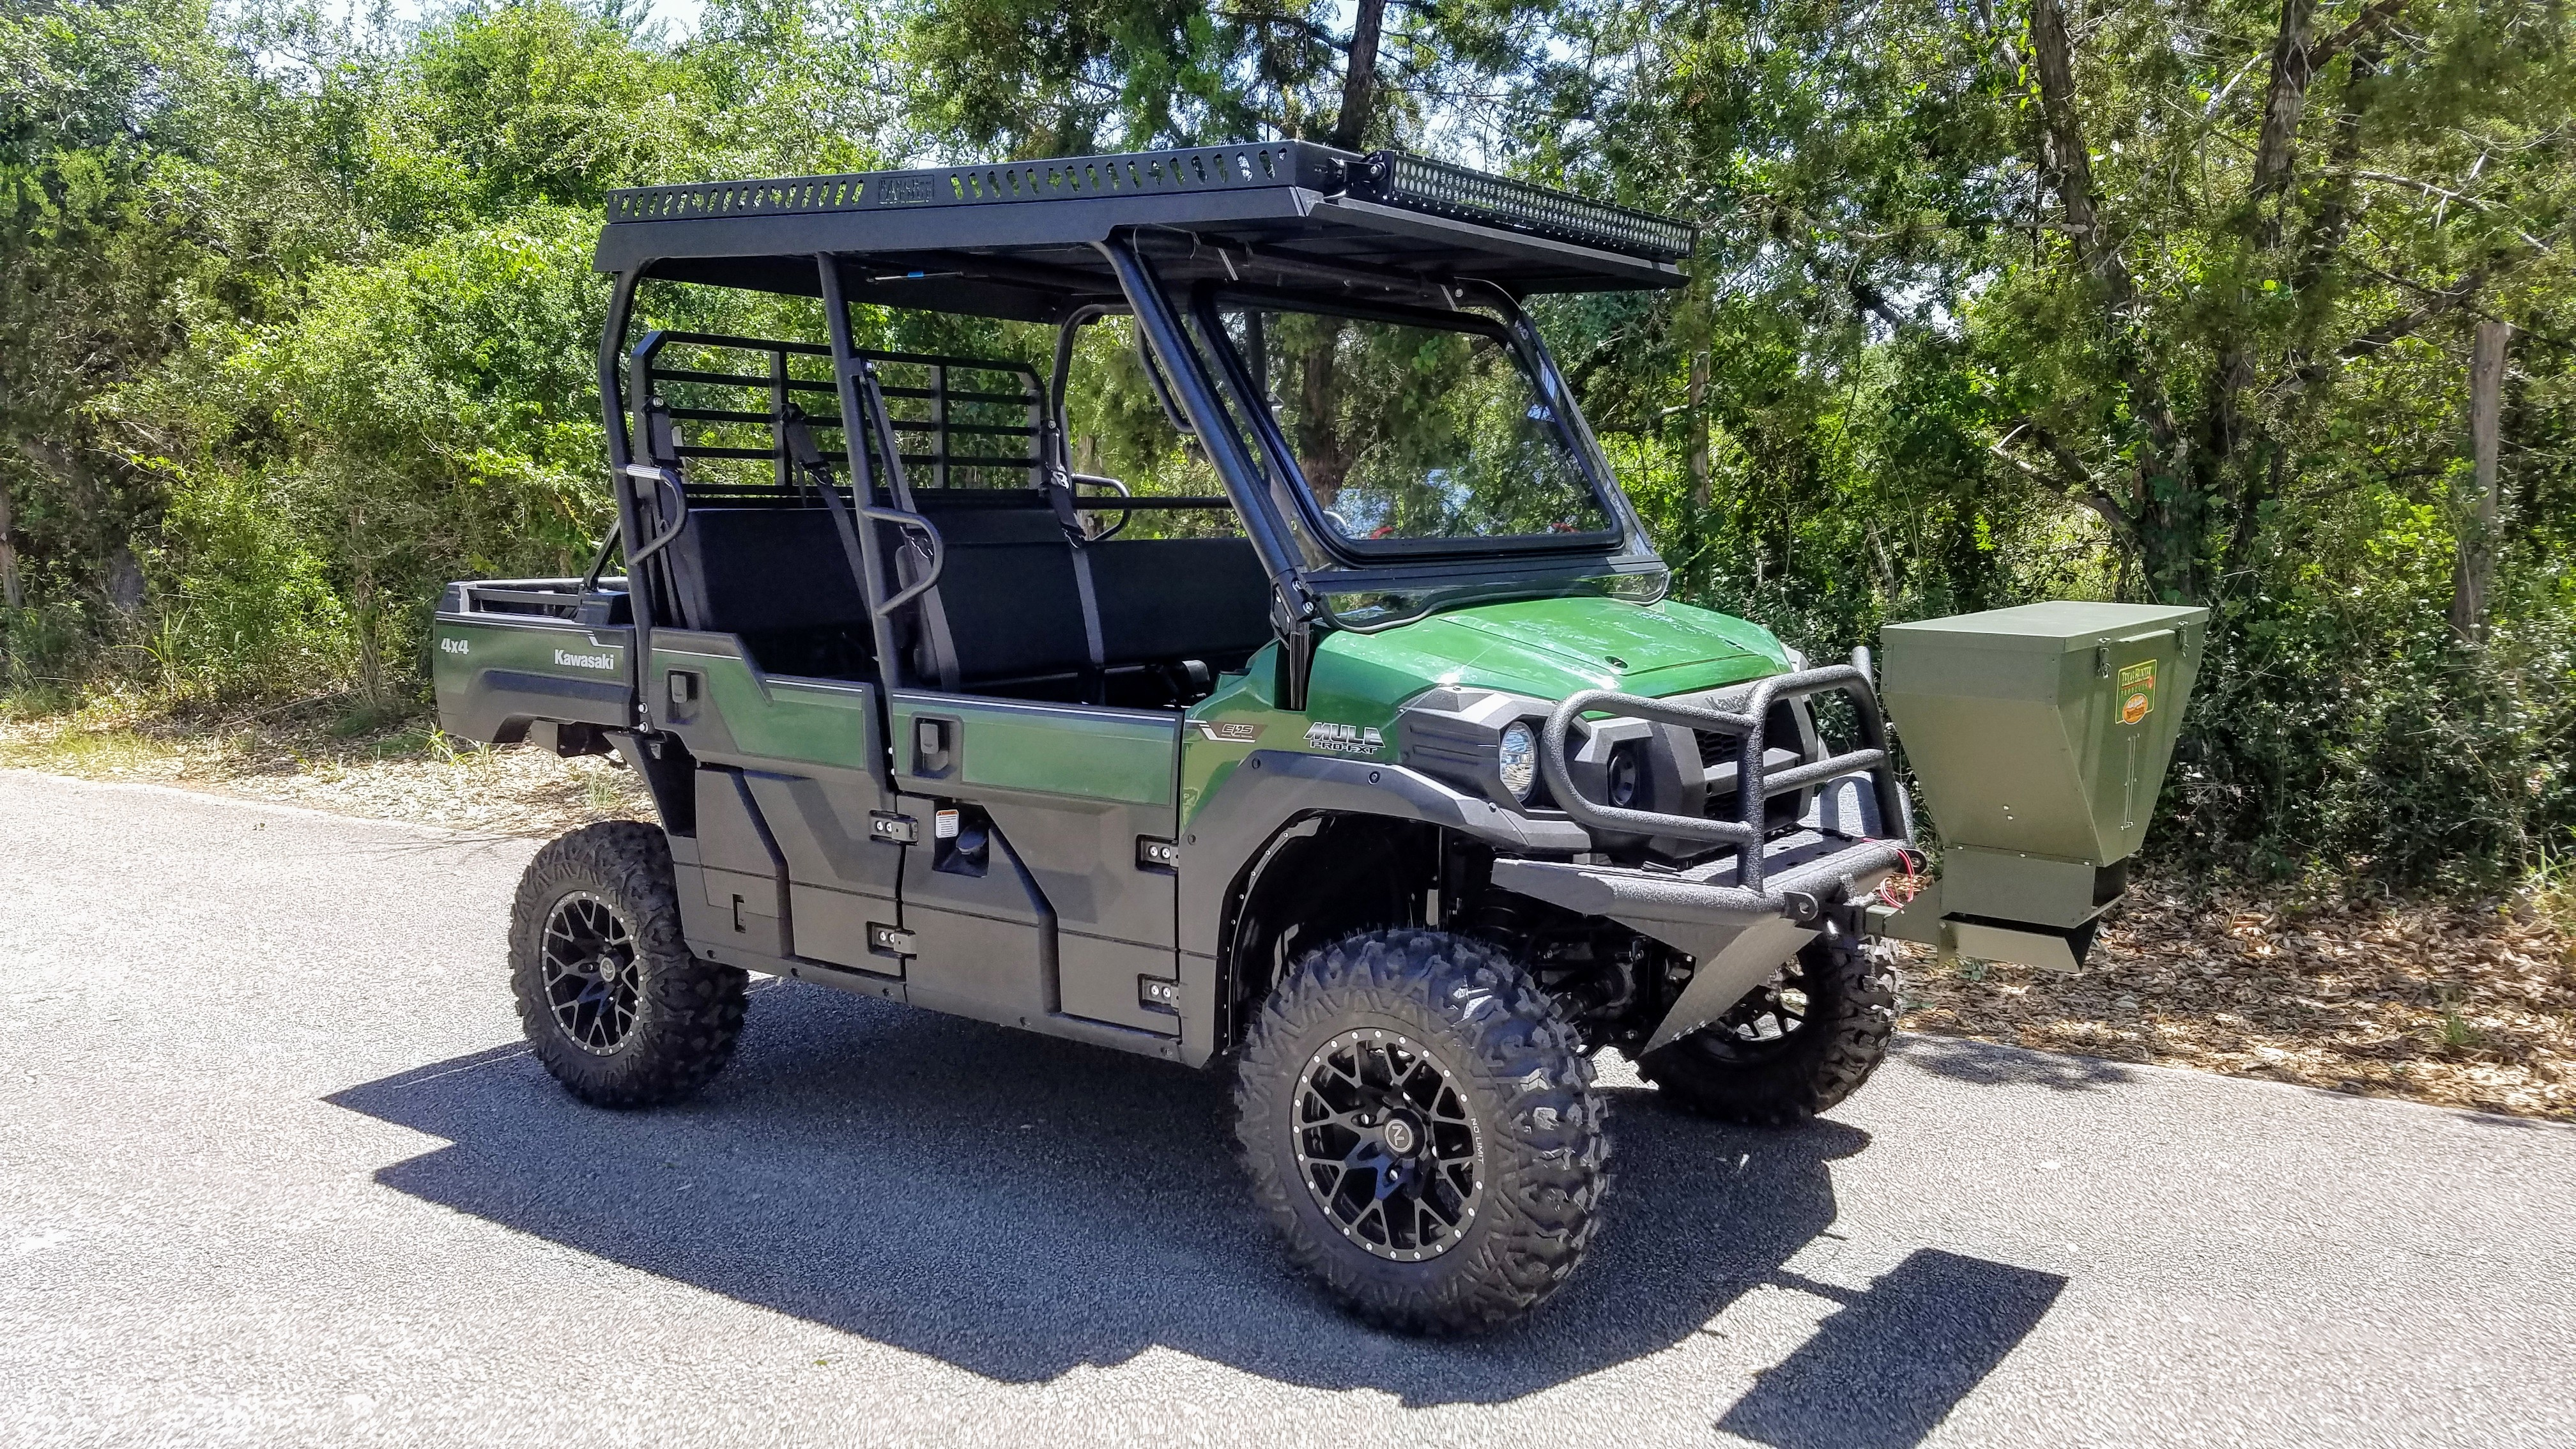 kawasaki-mule-pro-fxt-metal-roof-extended-version-with-feeder-and-bumper.jpg